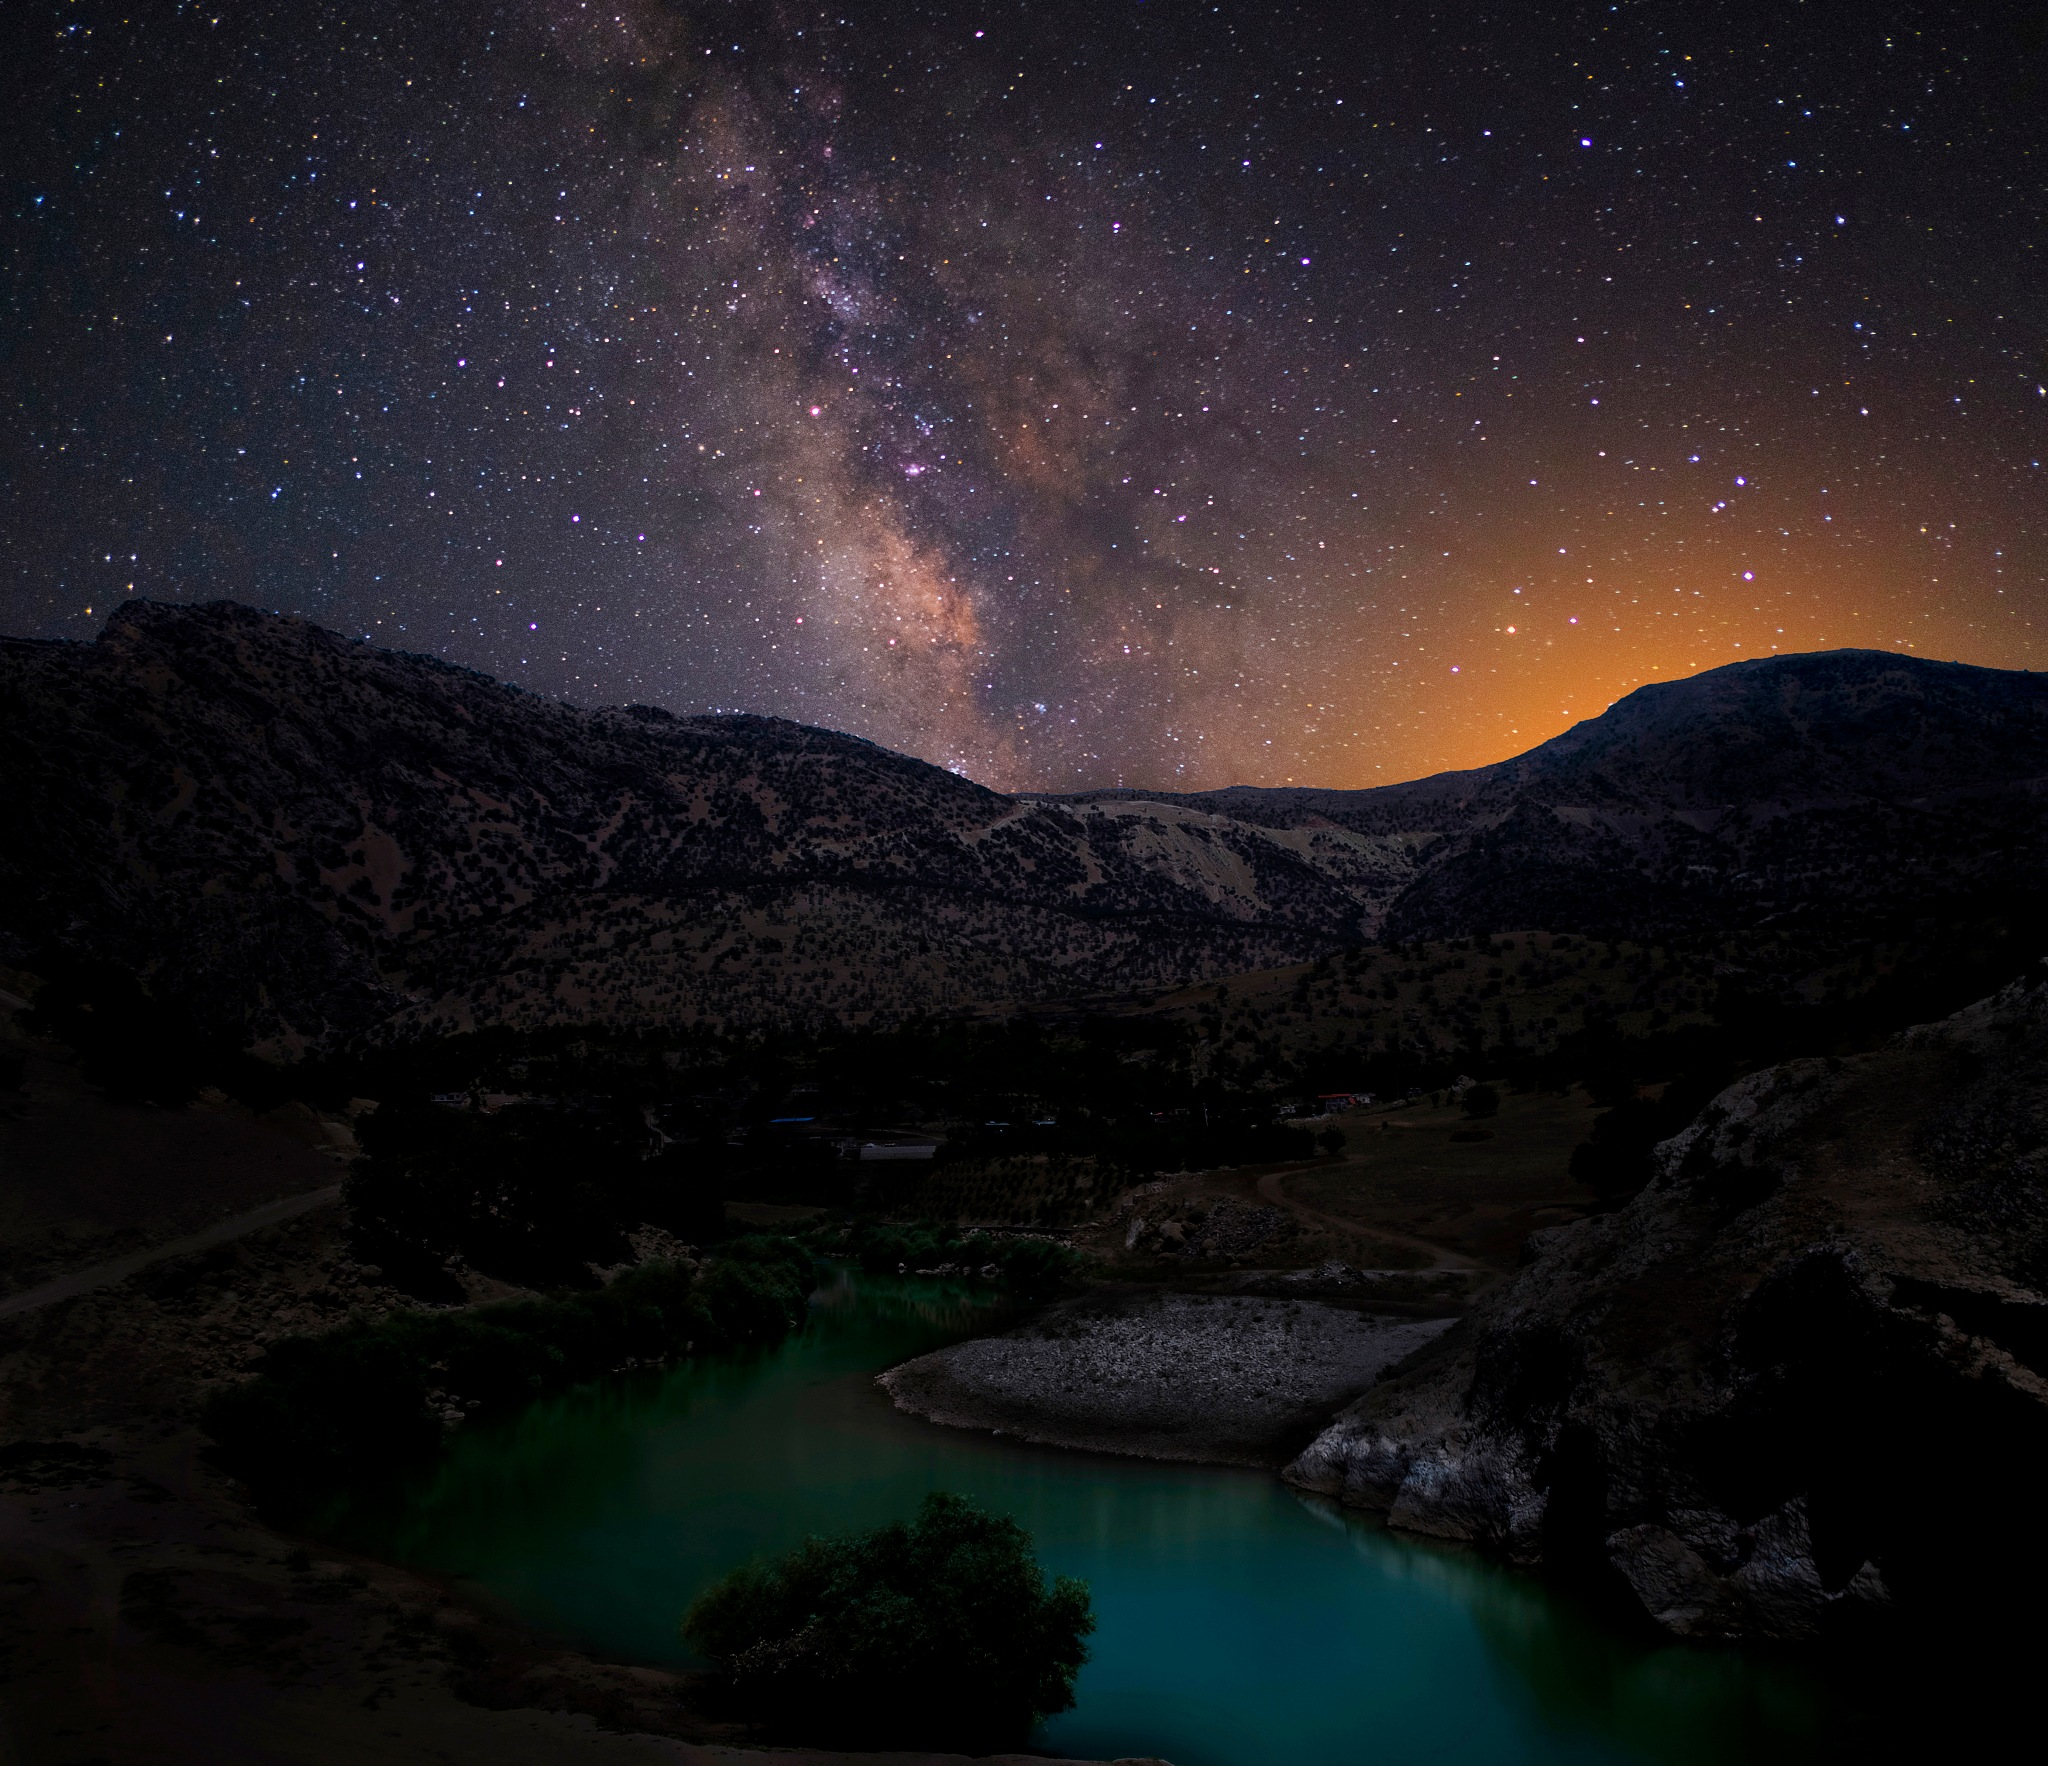 Milkyway over Arvand river by Shahriar Dabiri